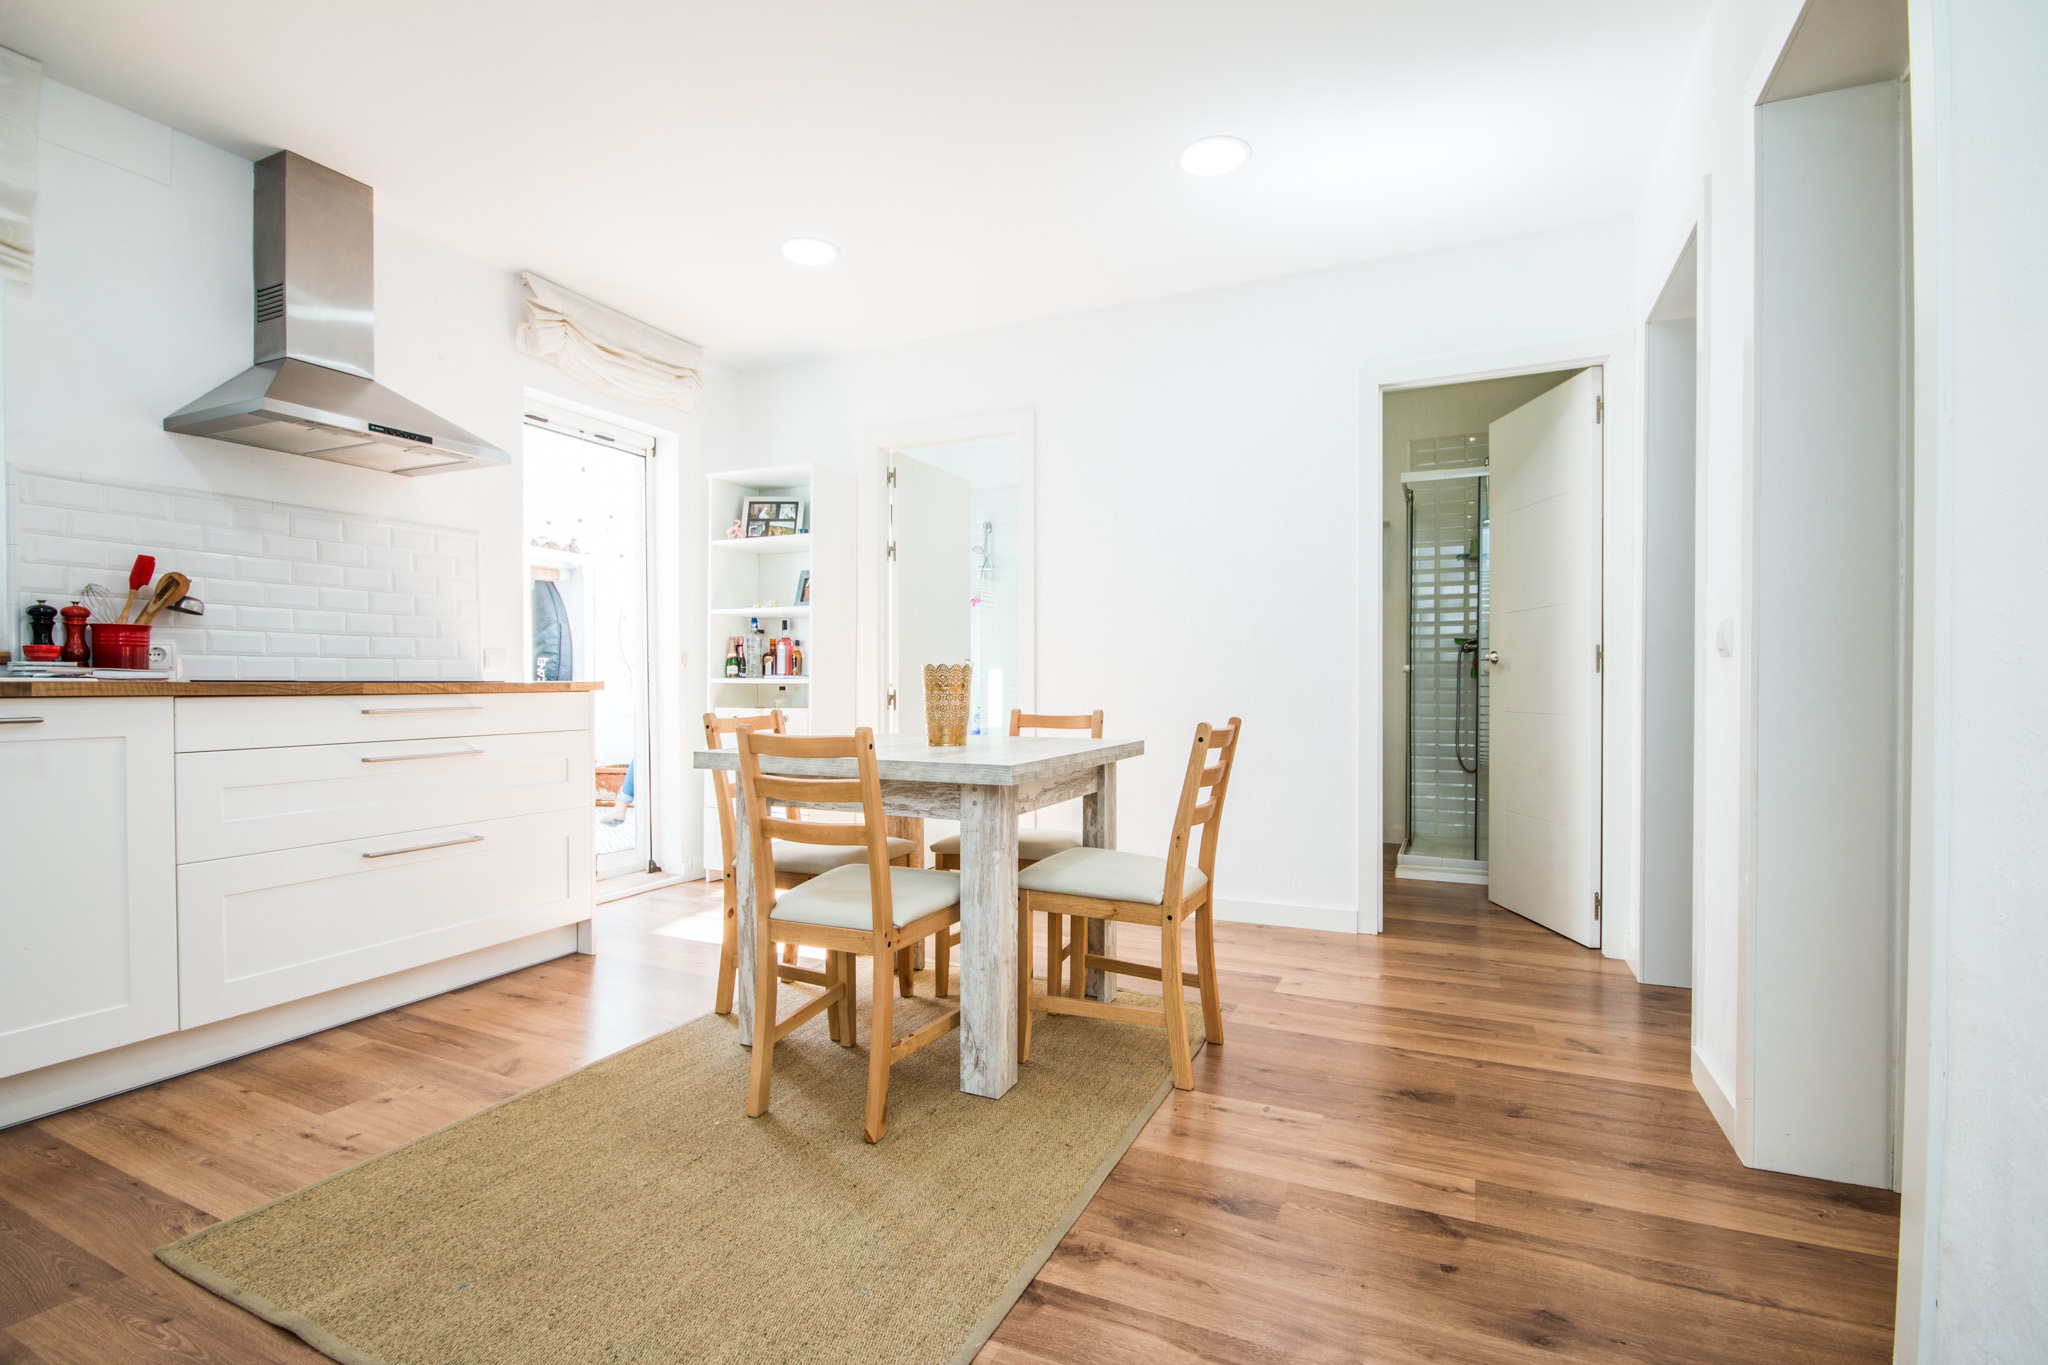 Spacious and fresh looking kitchen and dining area